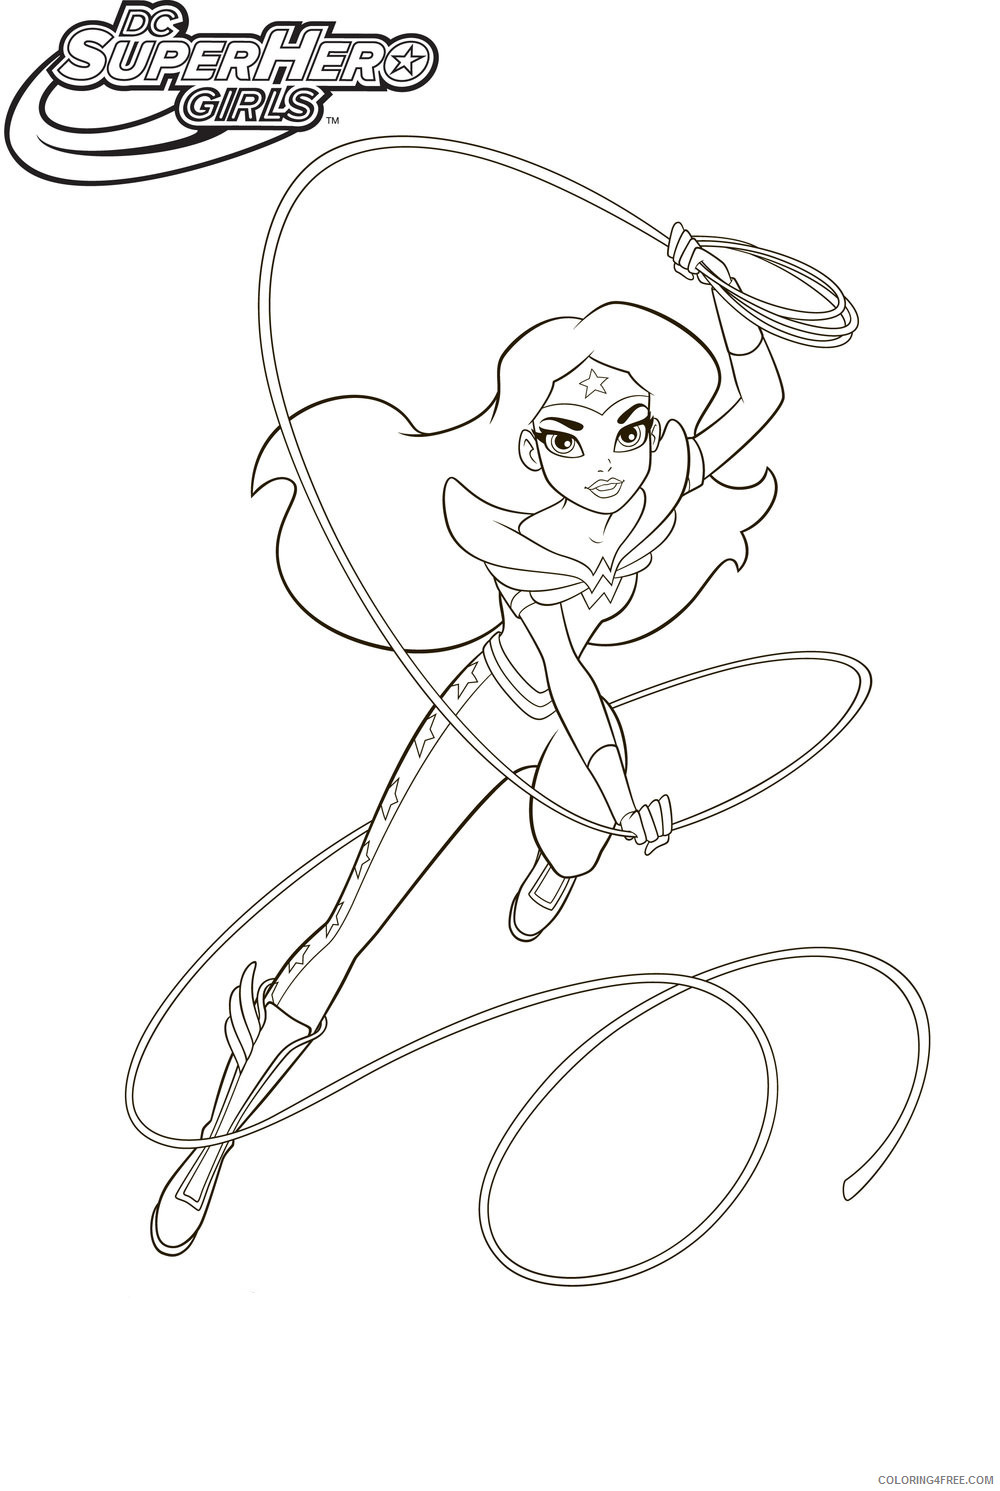 DC Super Hero Girls Coloring Pages Superheroes Printable 2020 Coloring4free